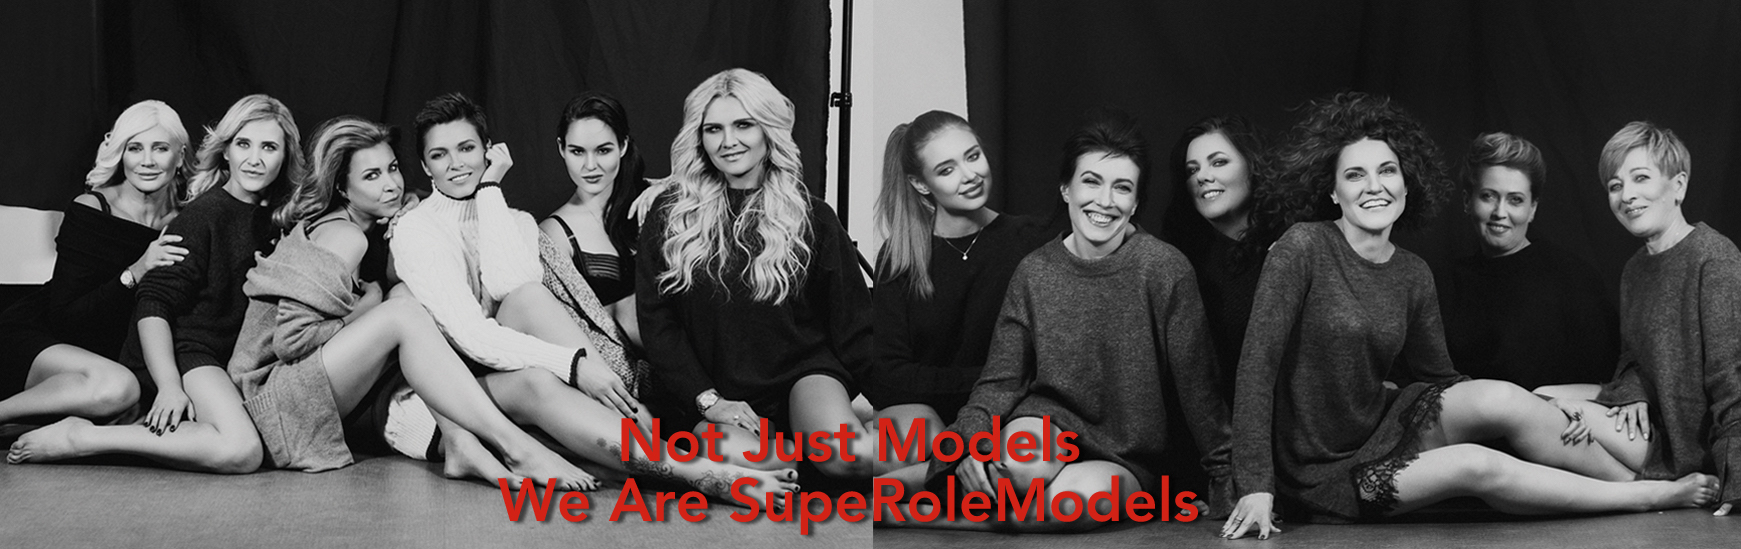 superolemodelsRED3.jpg